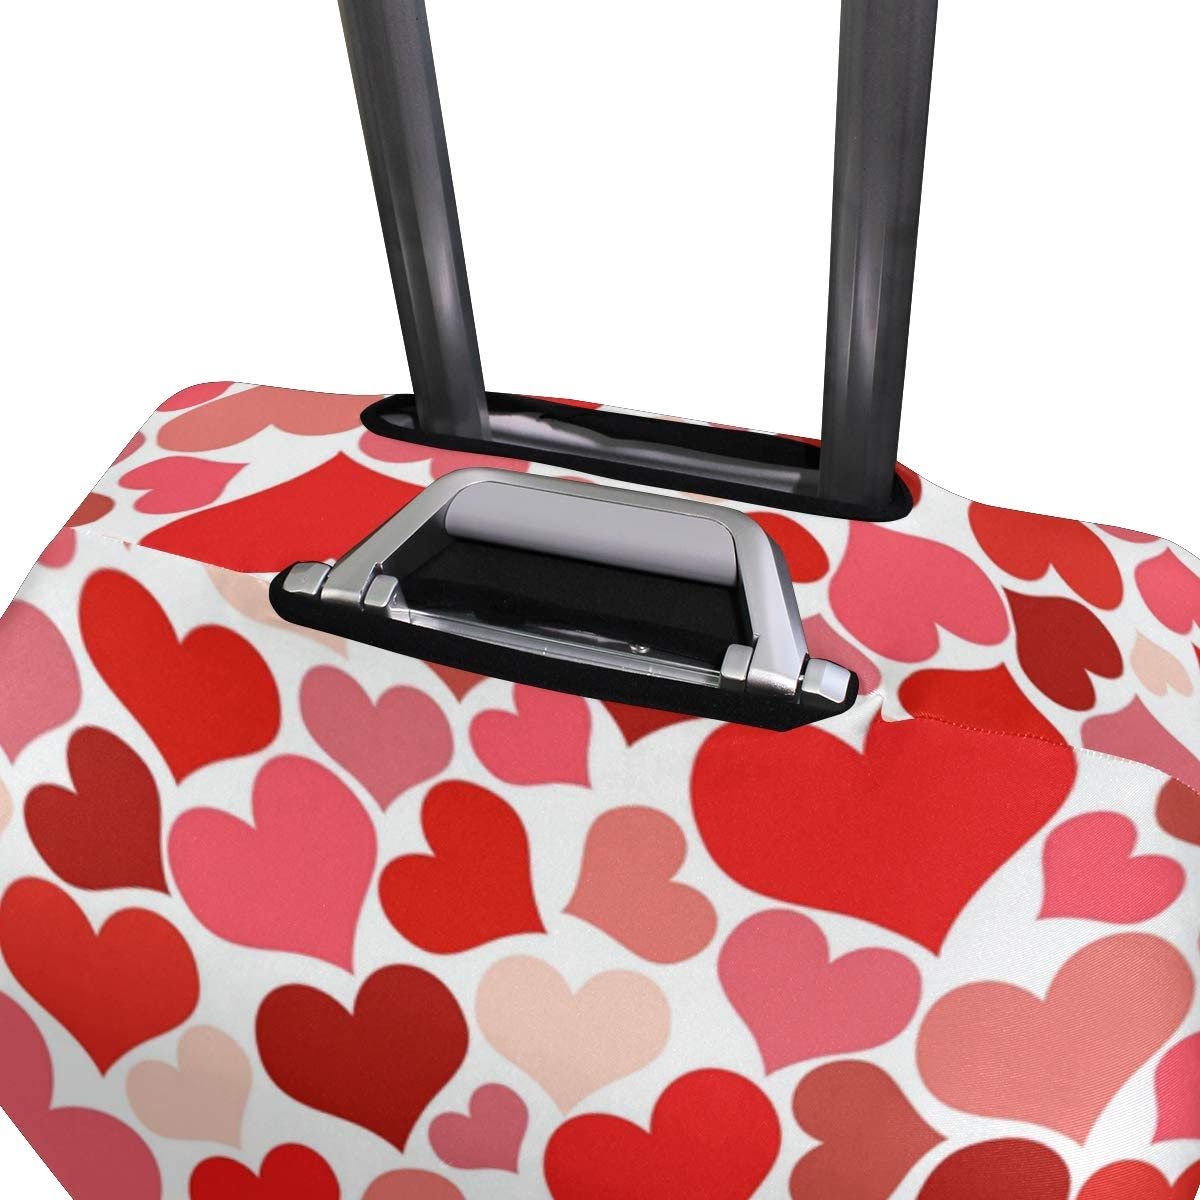 Cute 3D Abstract Heart Pattern Pattern Luggage Protector Travel Luggage Cover Trolley Case Protective Cover Fits 18-32 Inch